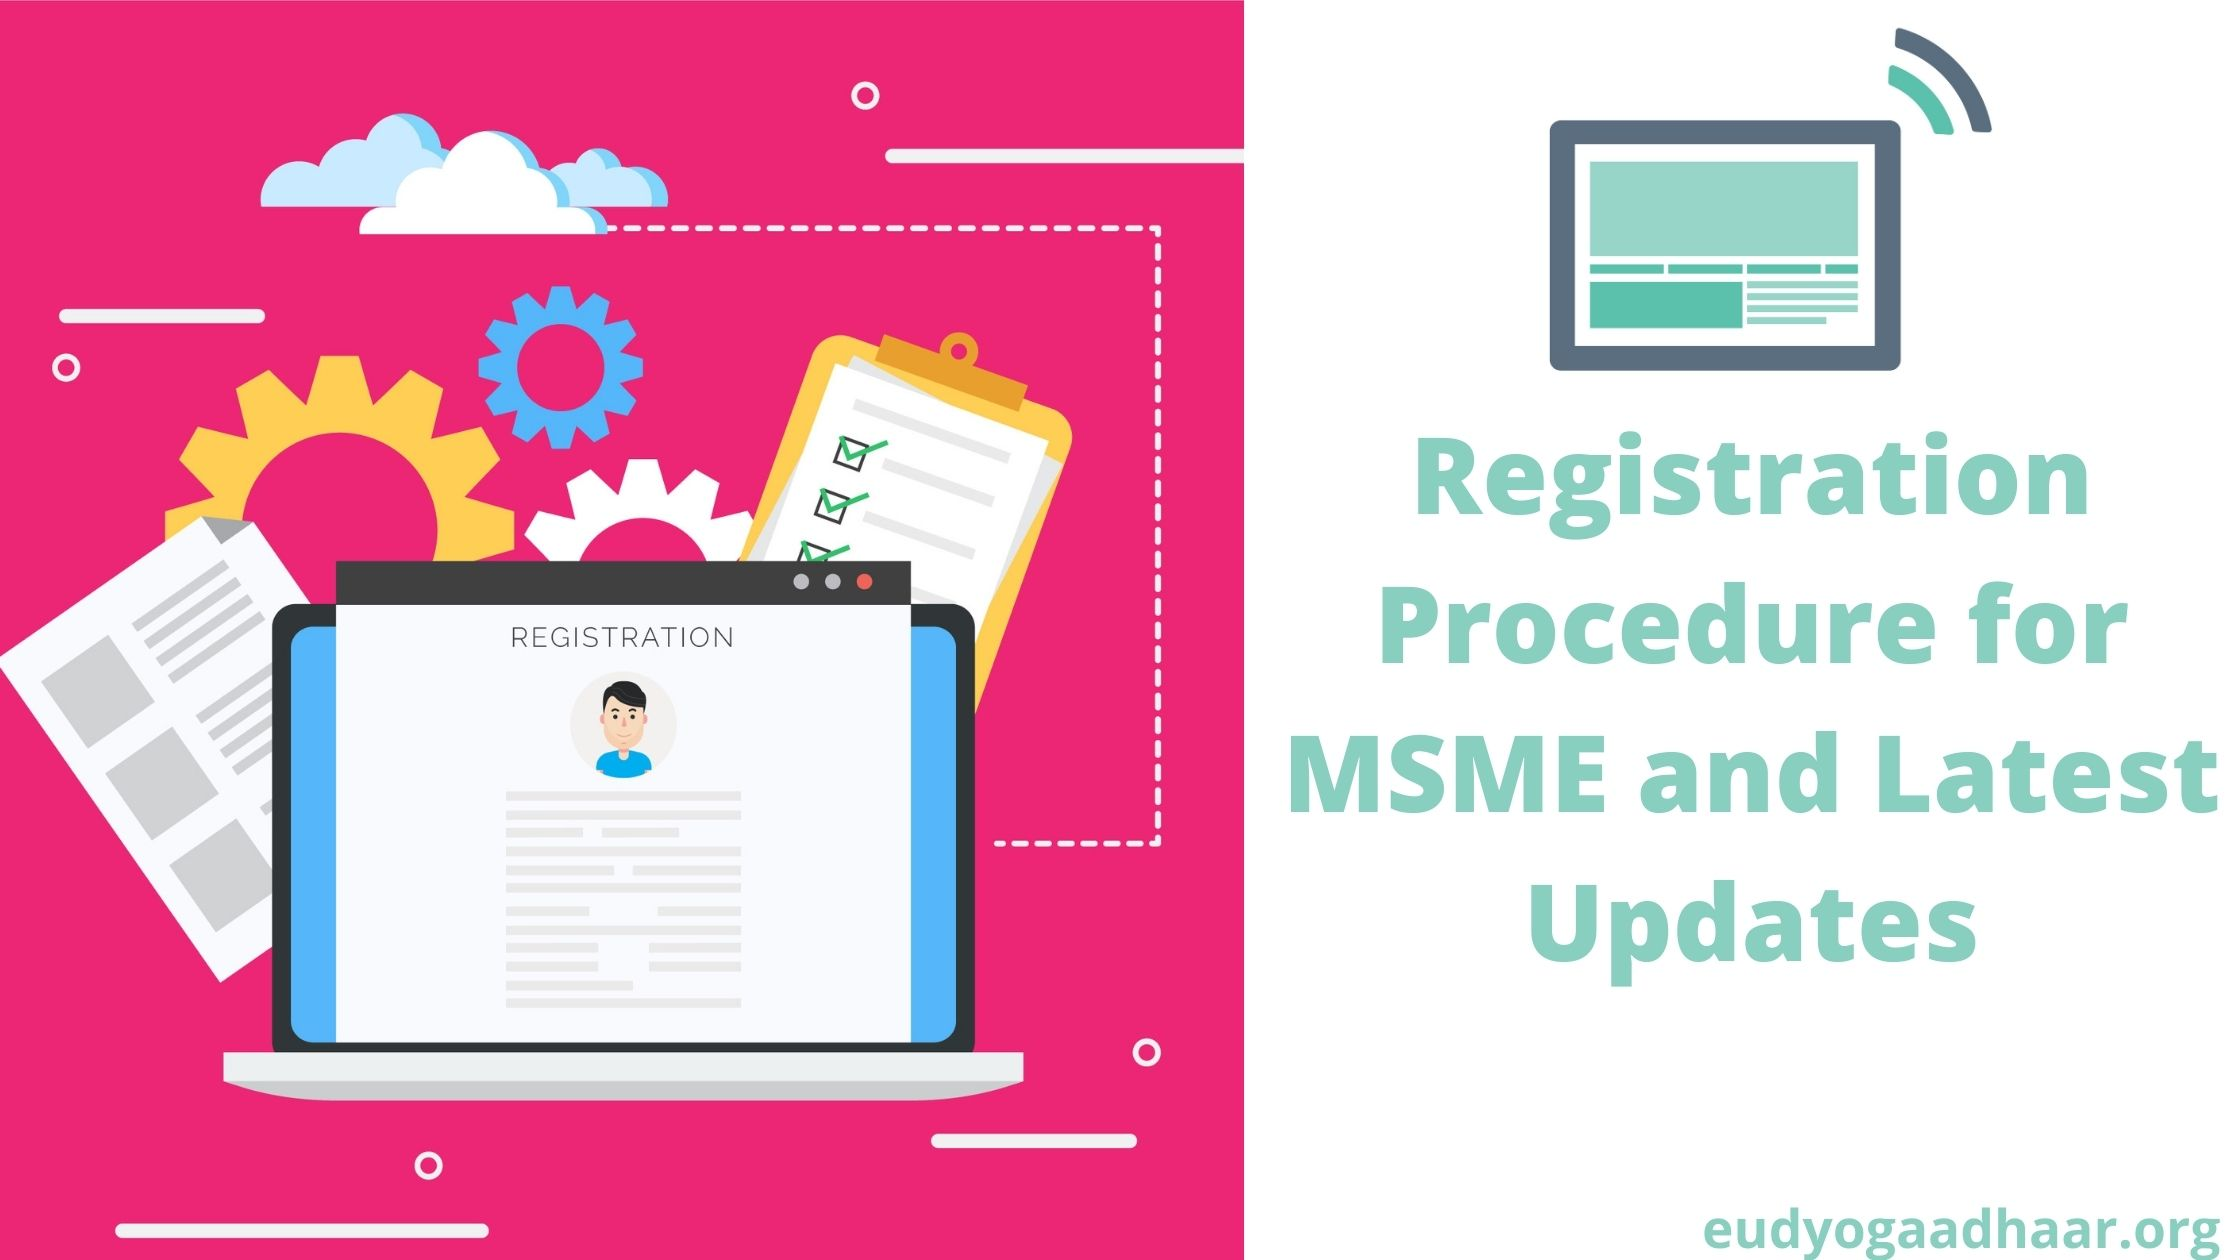 Registration Procedure for MSME and Latest Updates